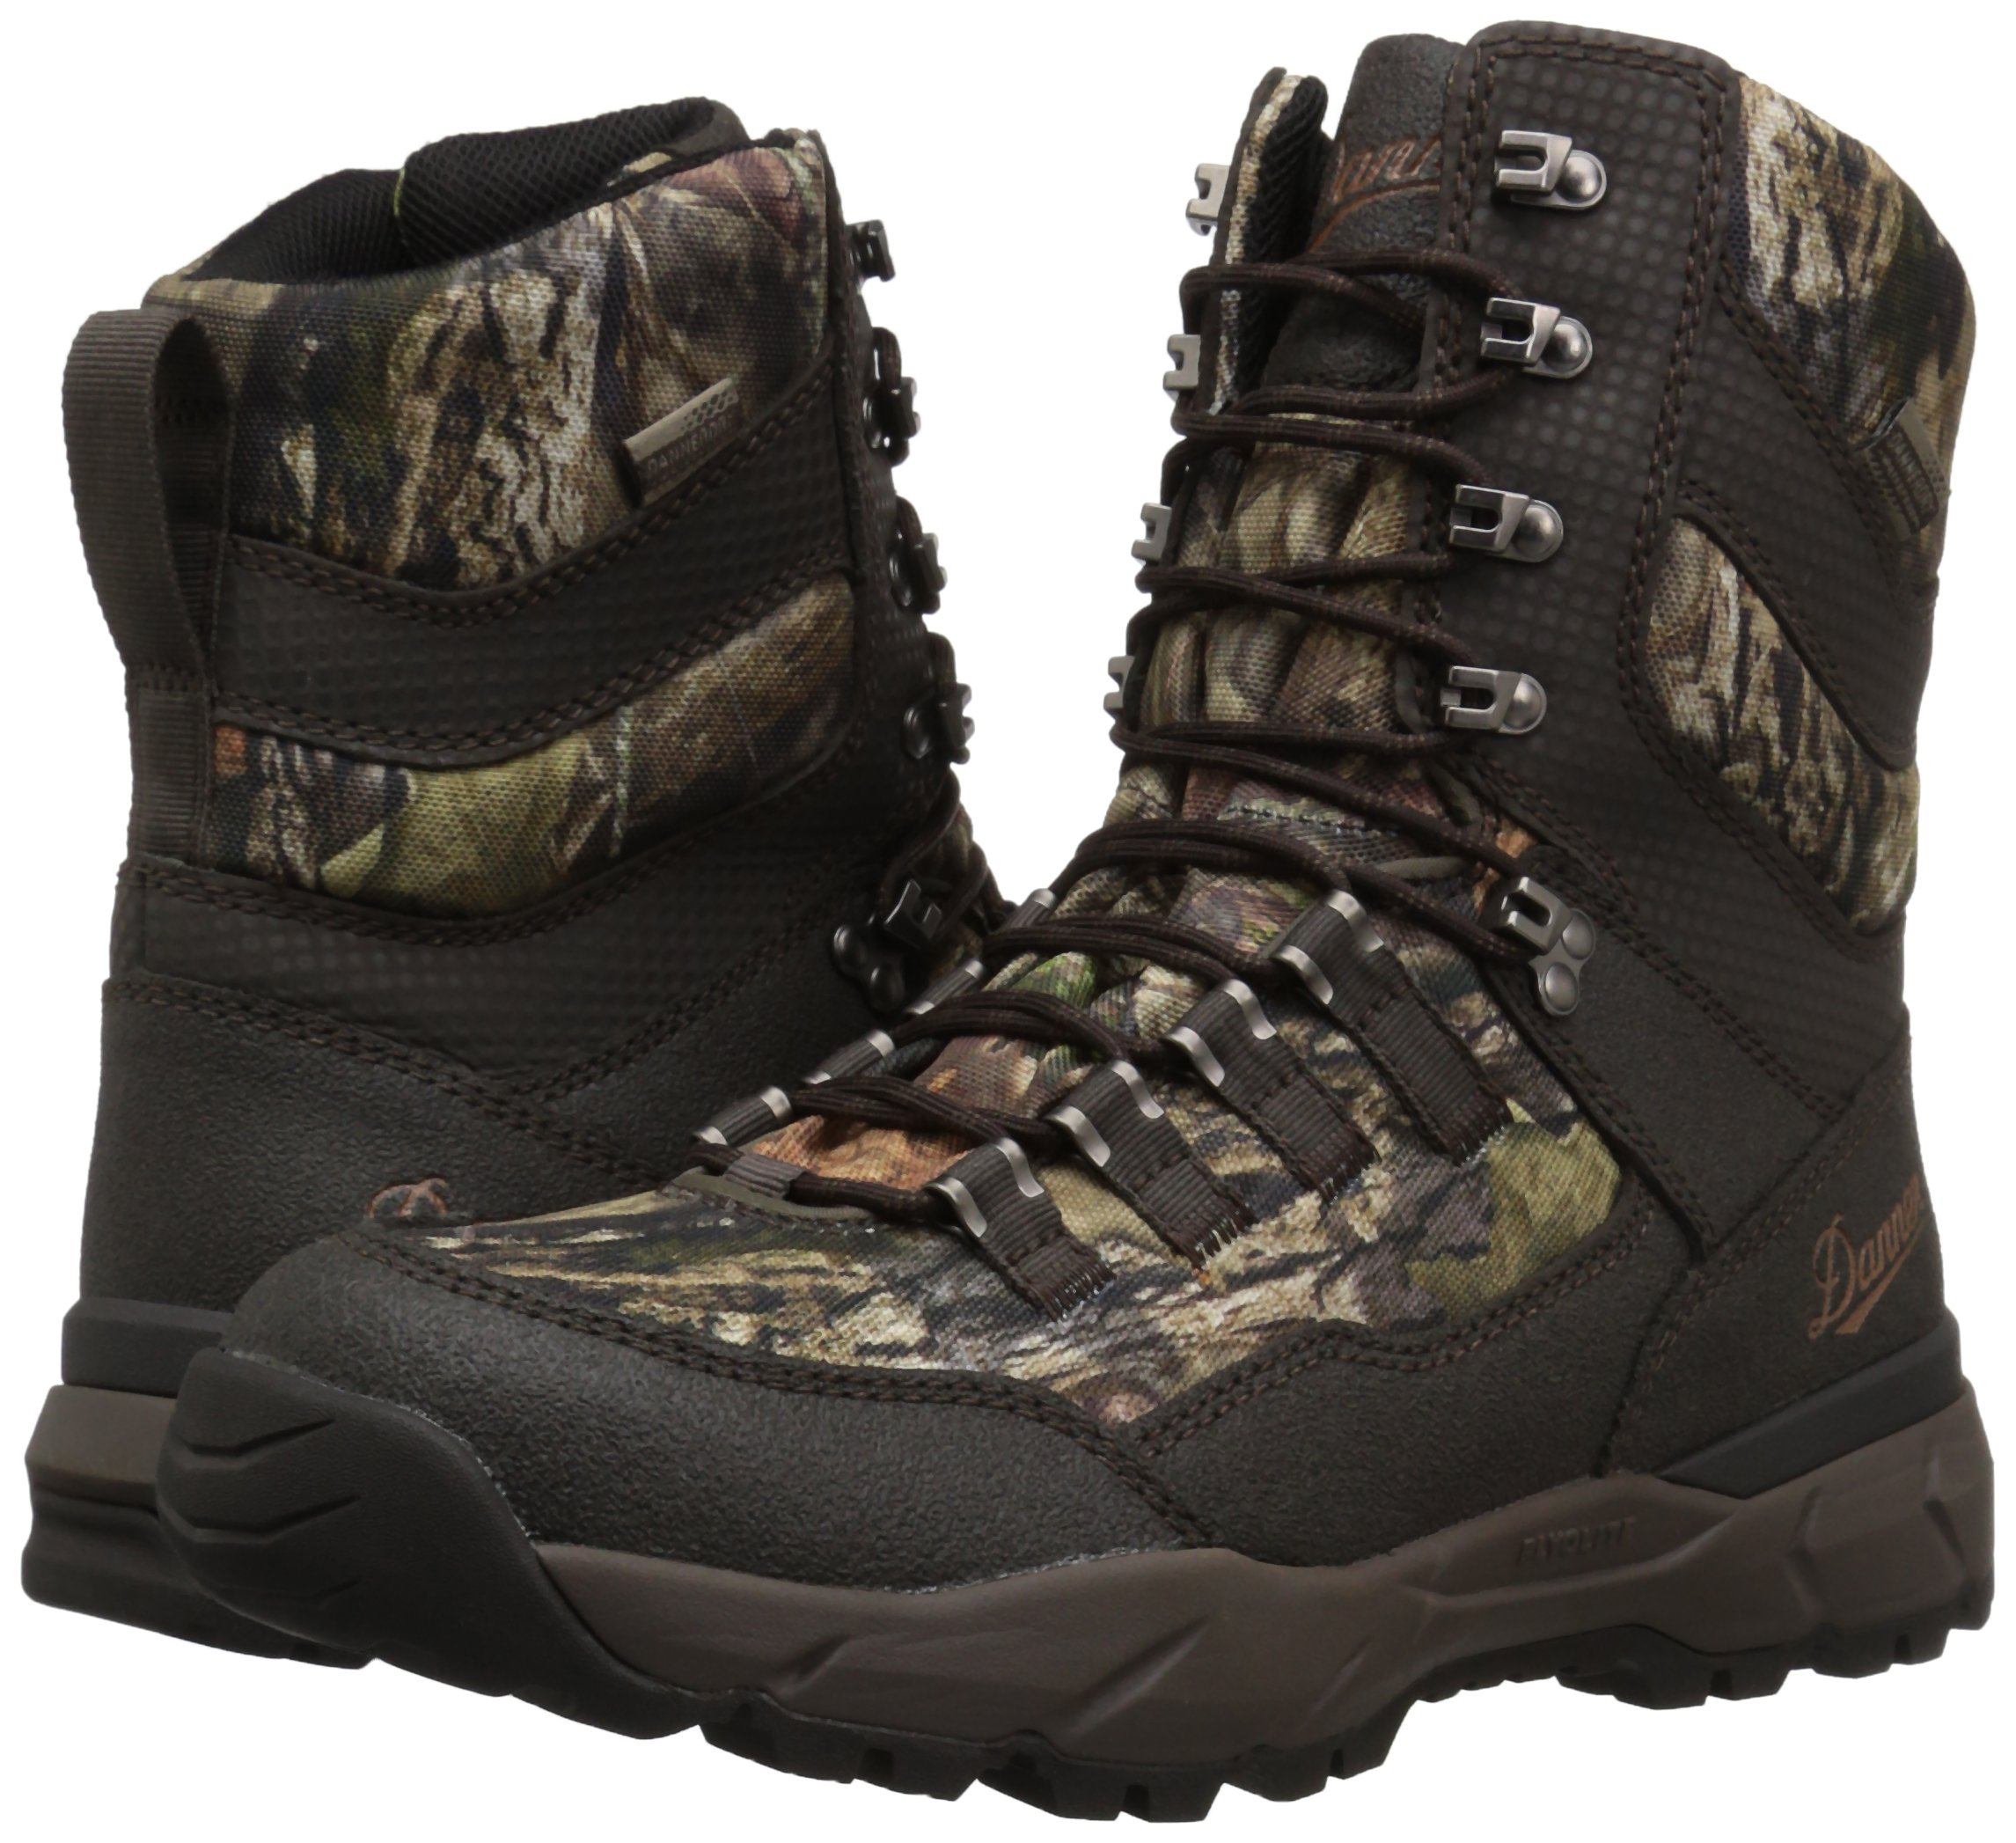 Danner Men's Vital Insulated 400G Hunting Shoes, Mossy Oak Break Up Country, 8.5 D US by Danner (Image #6)